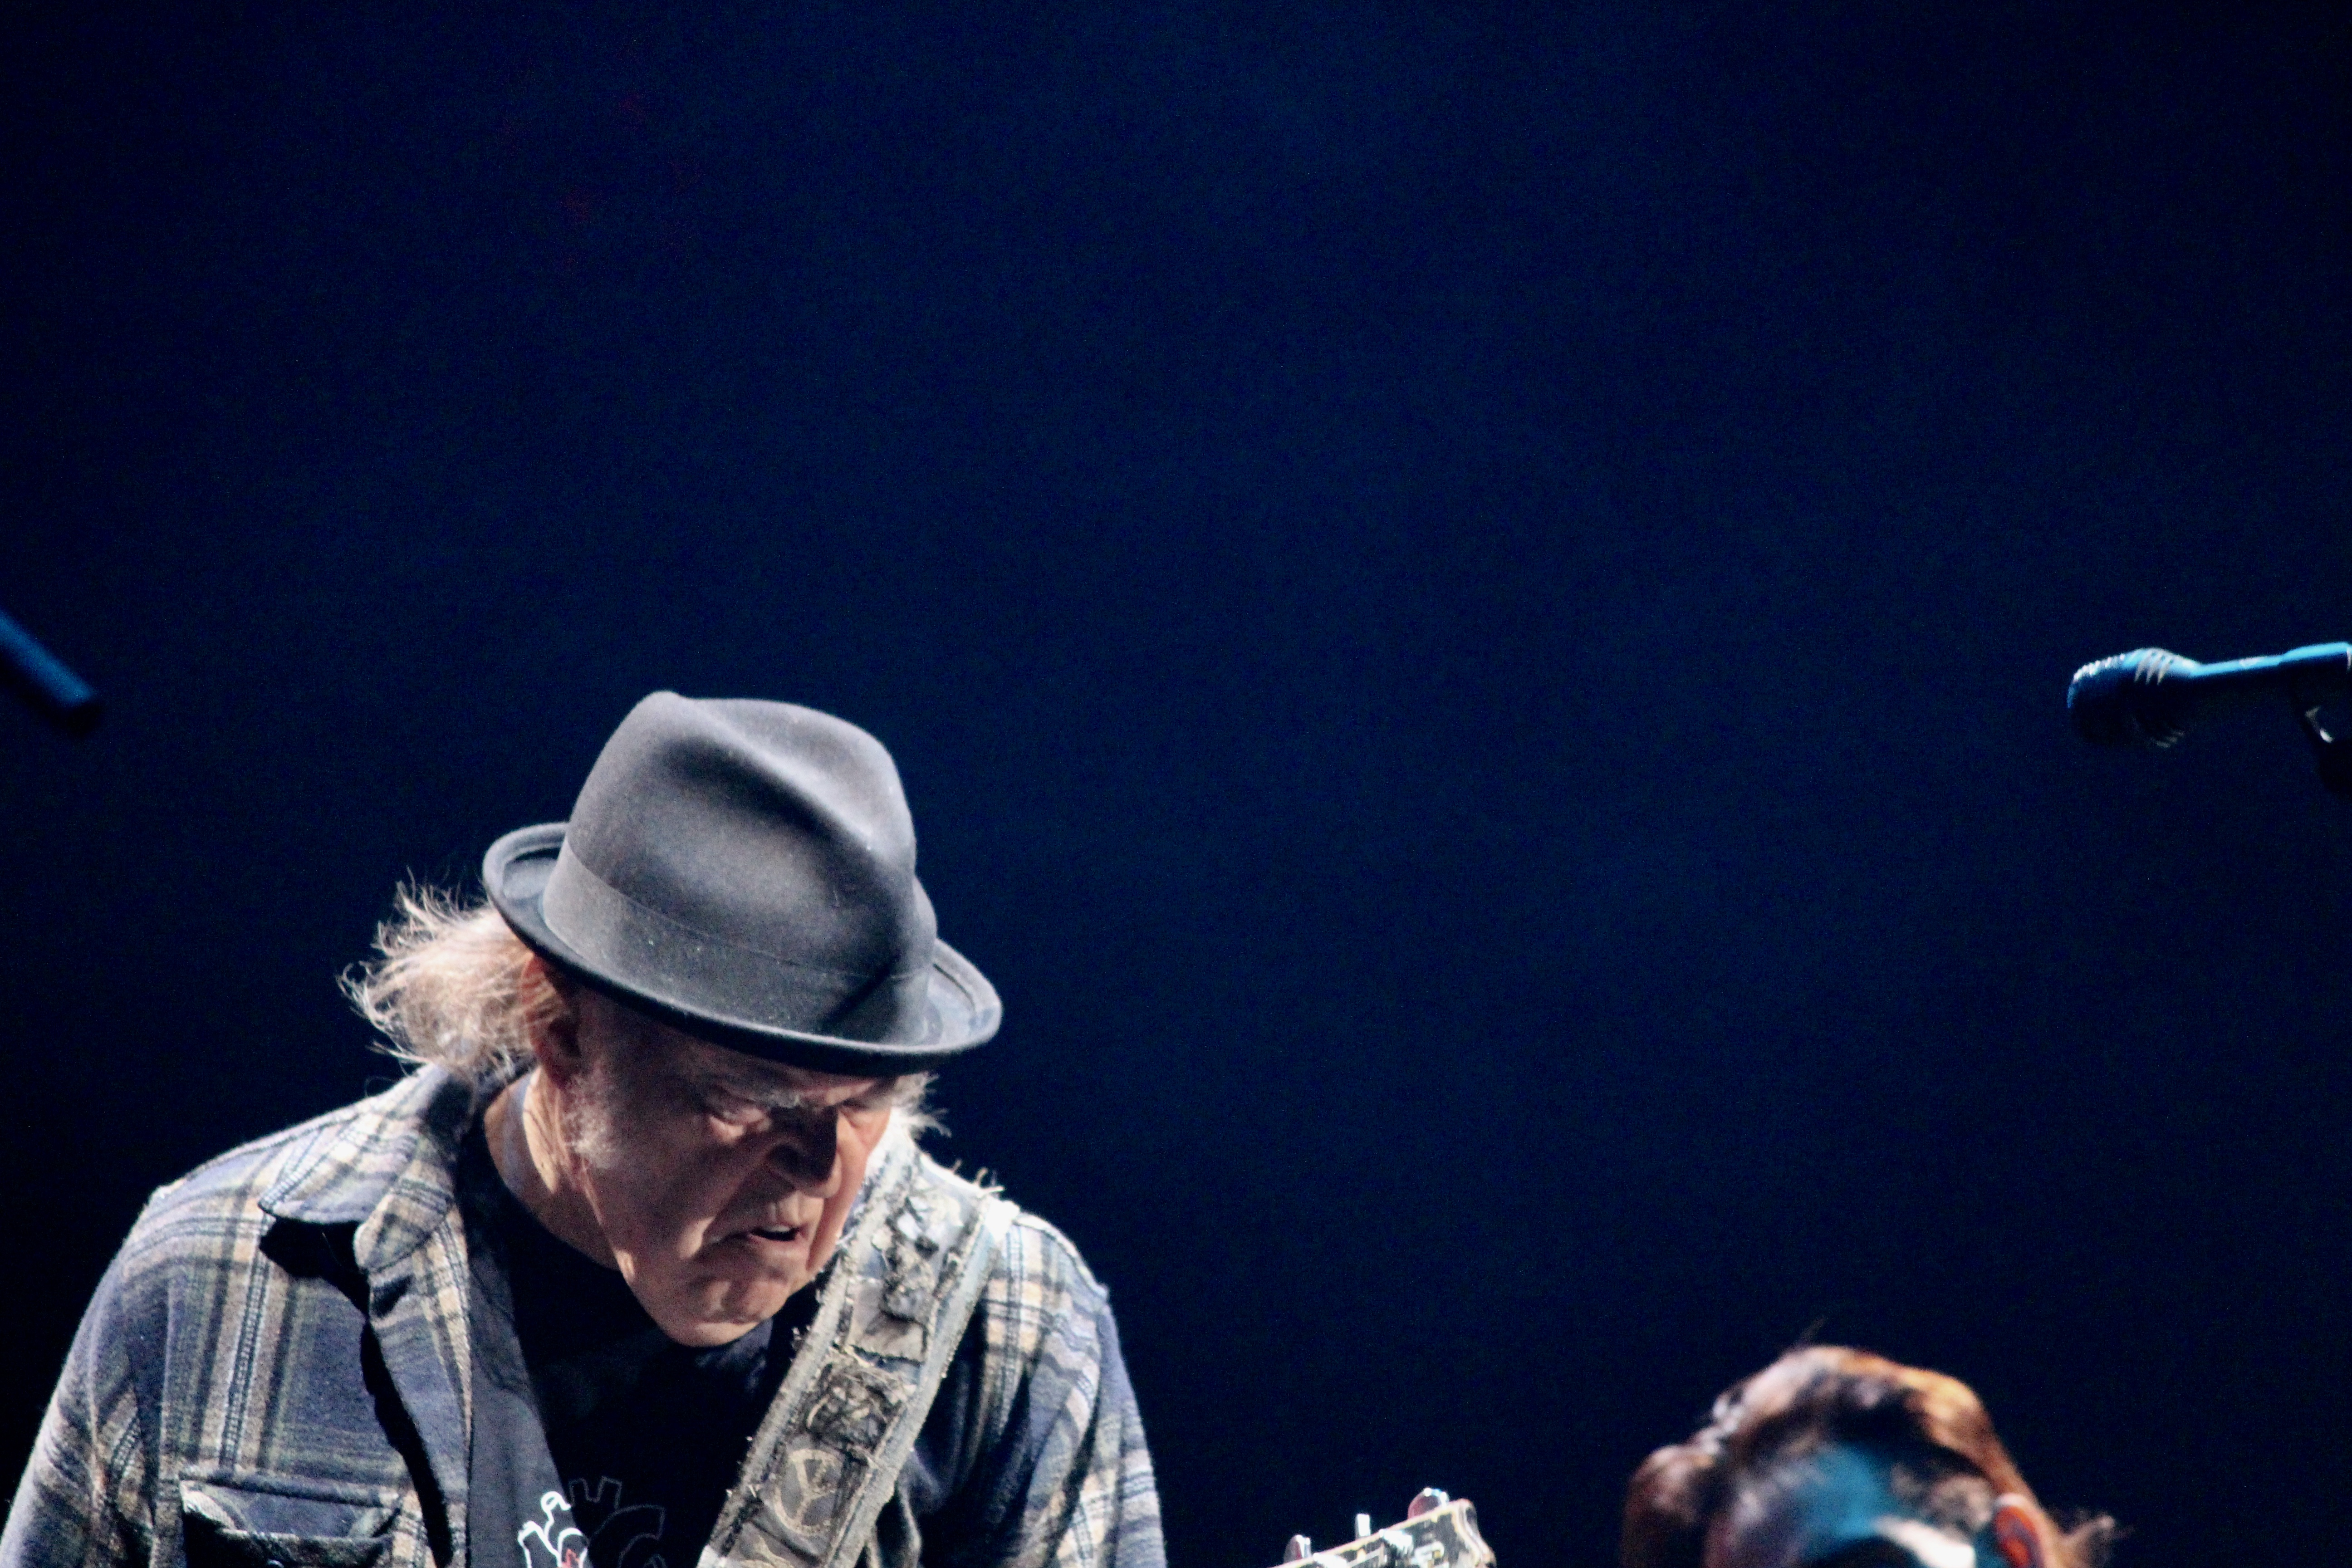 Neil-Young-Quebec City Summer Fest-Fran-Welch